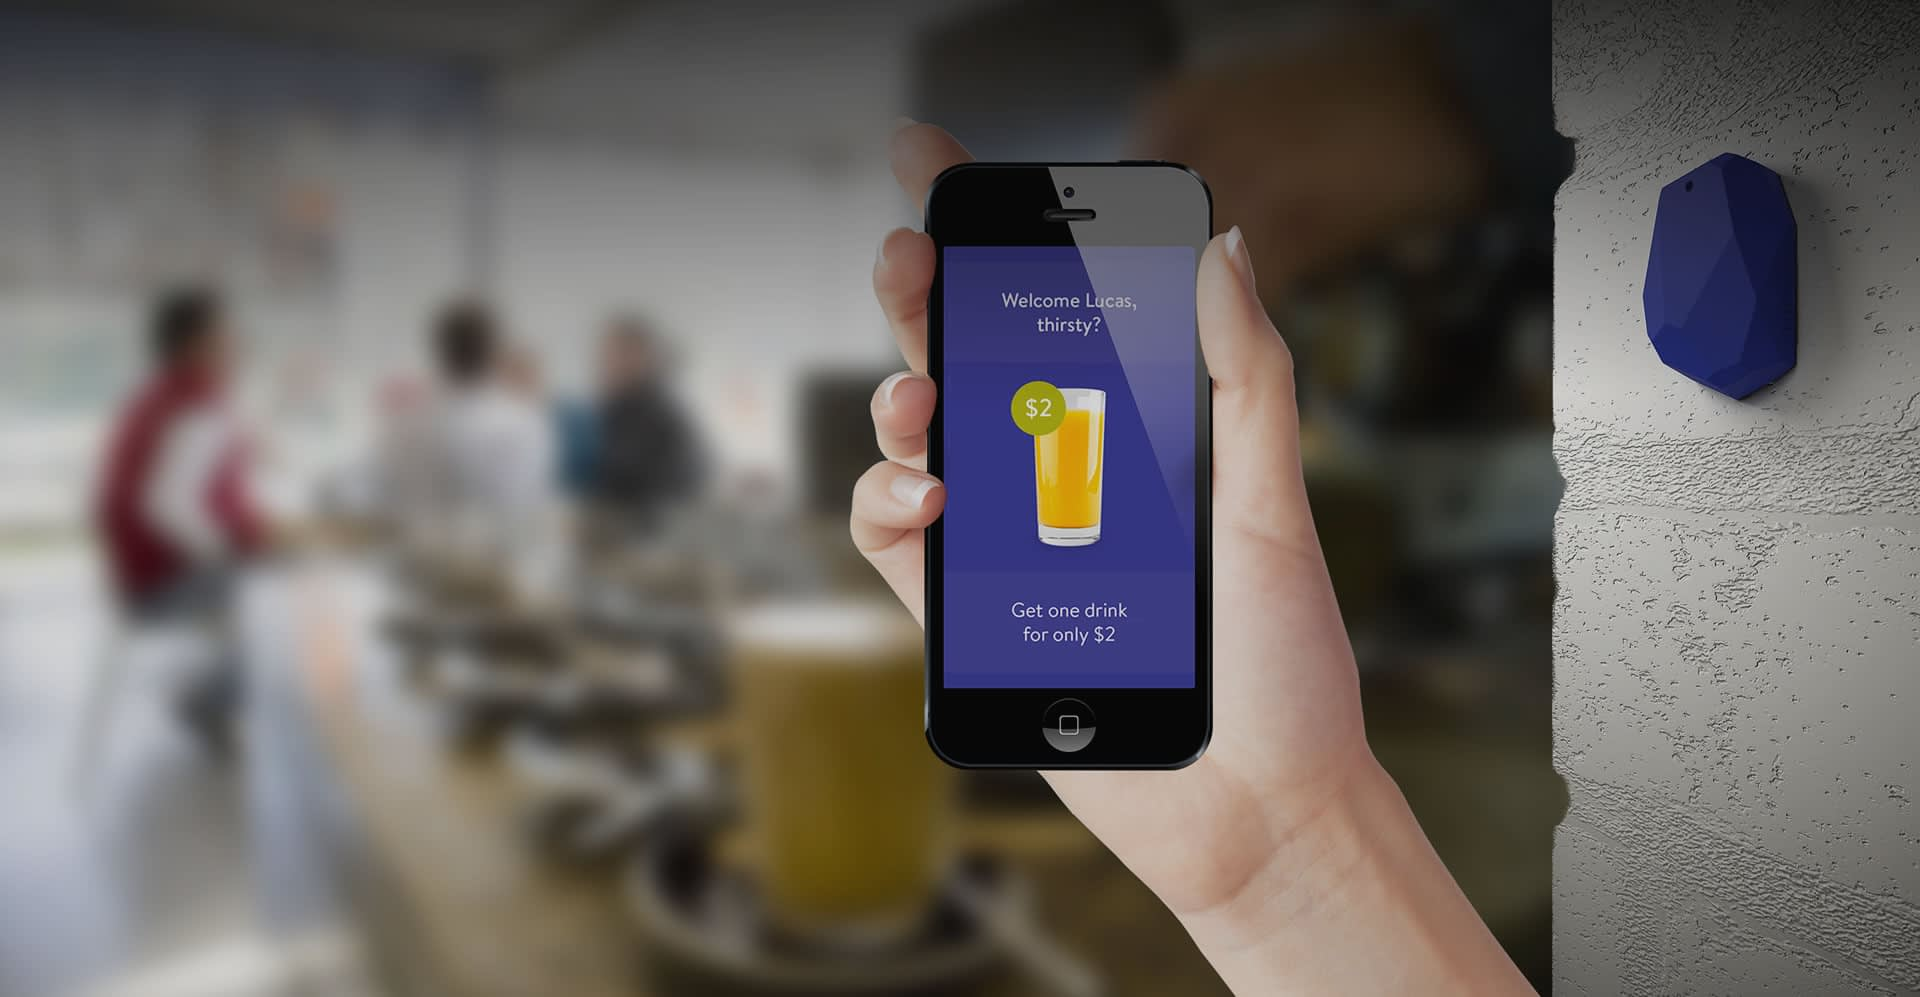 MHow Are Beacons Becoming An Inseparable Part of Travel Apps?